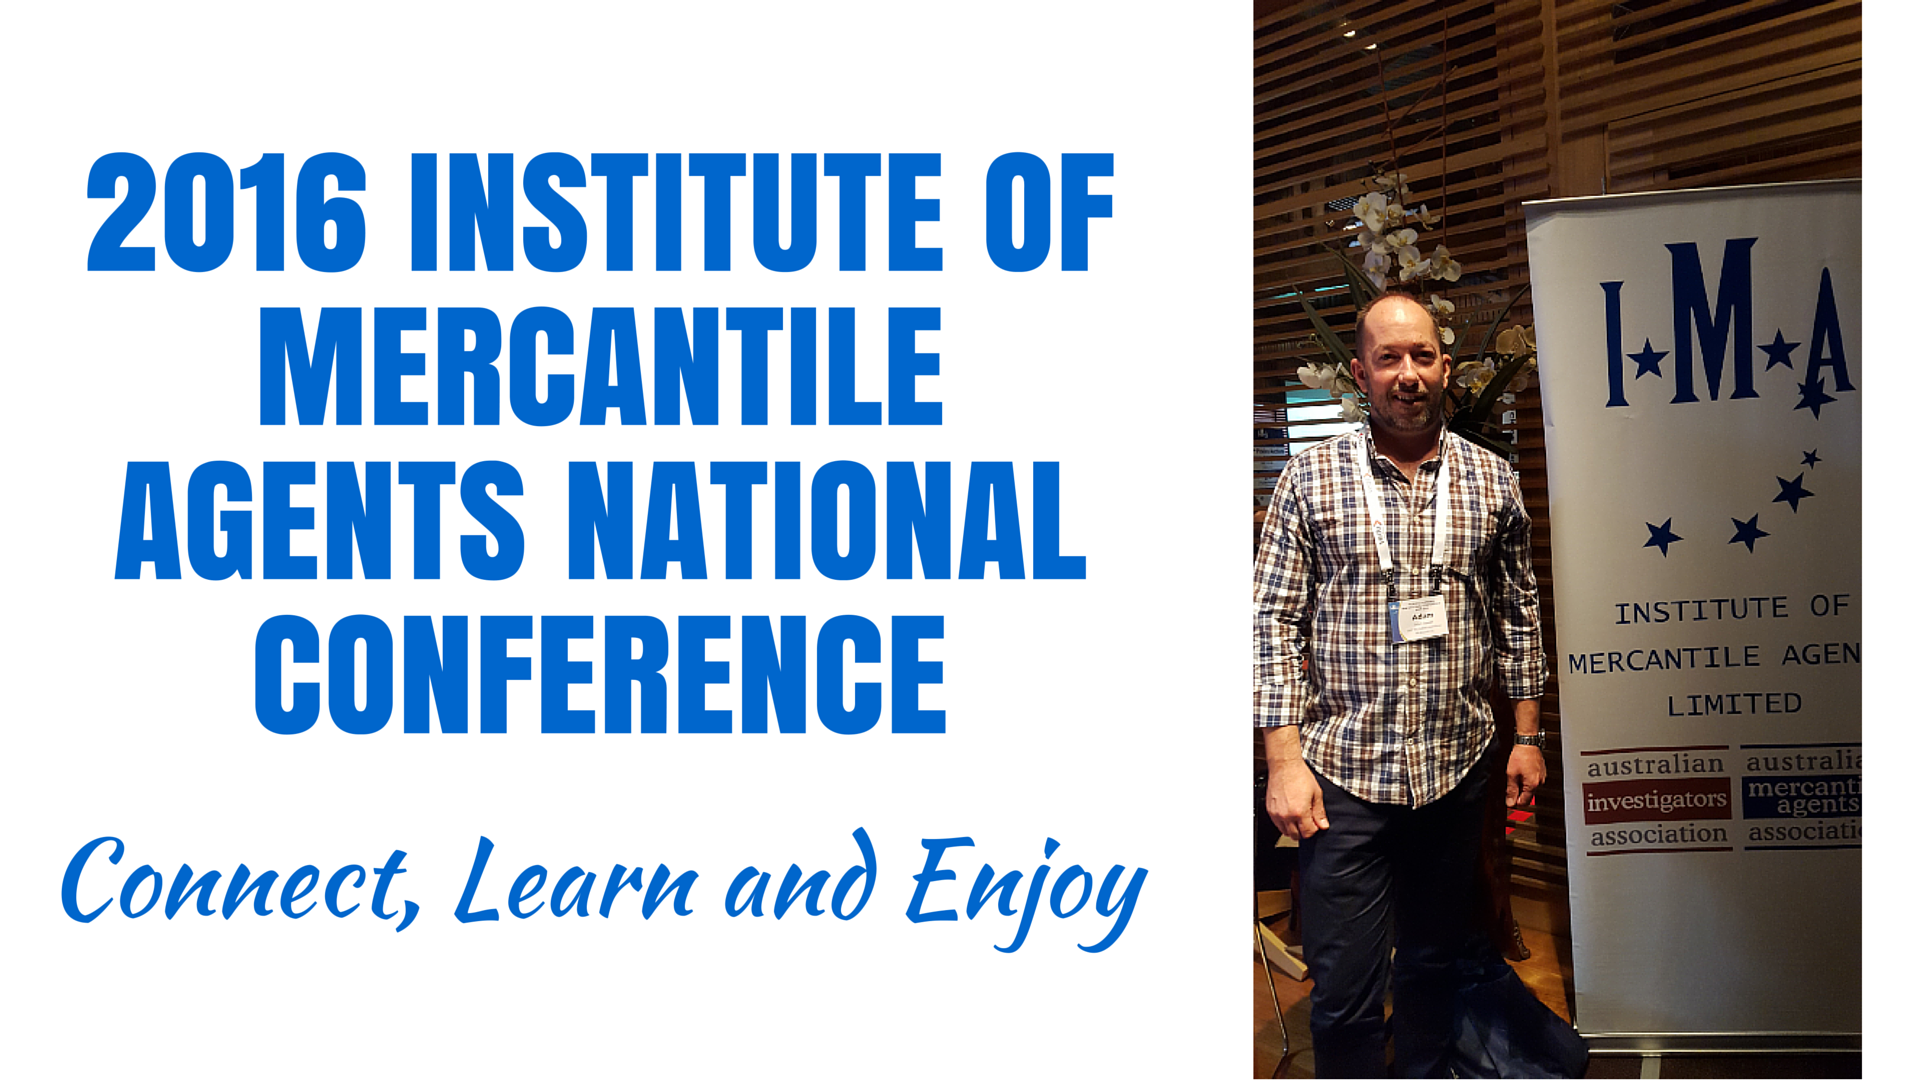 2016 Institute of Mercantile Agents National Conference: Connect, Learn and Enjoy